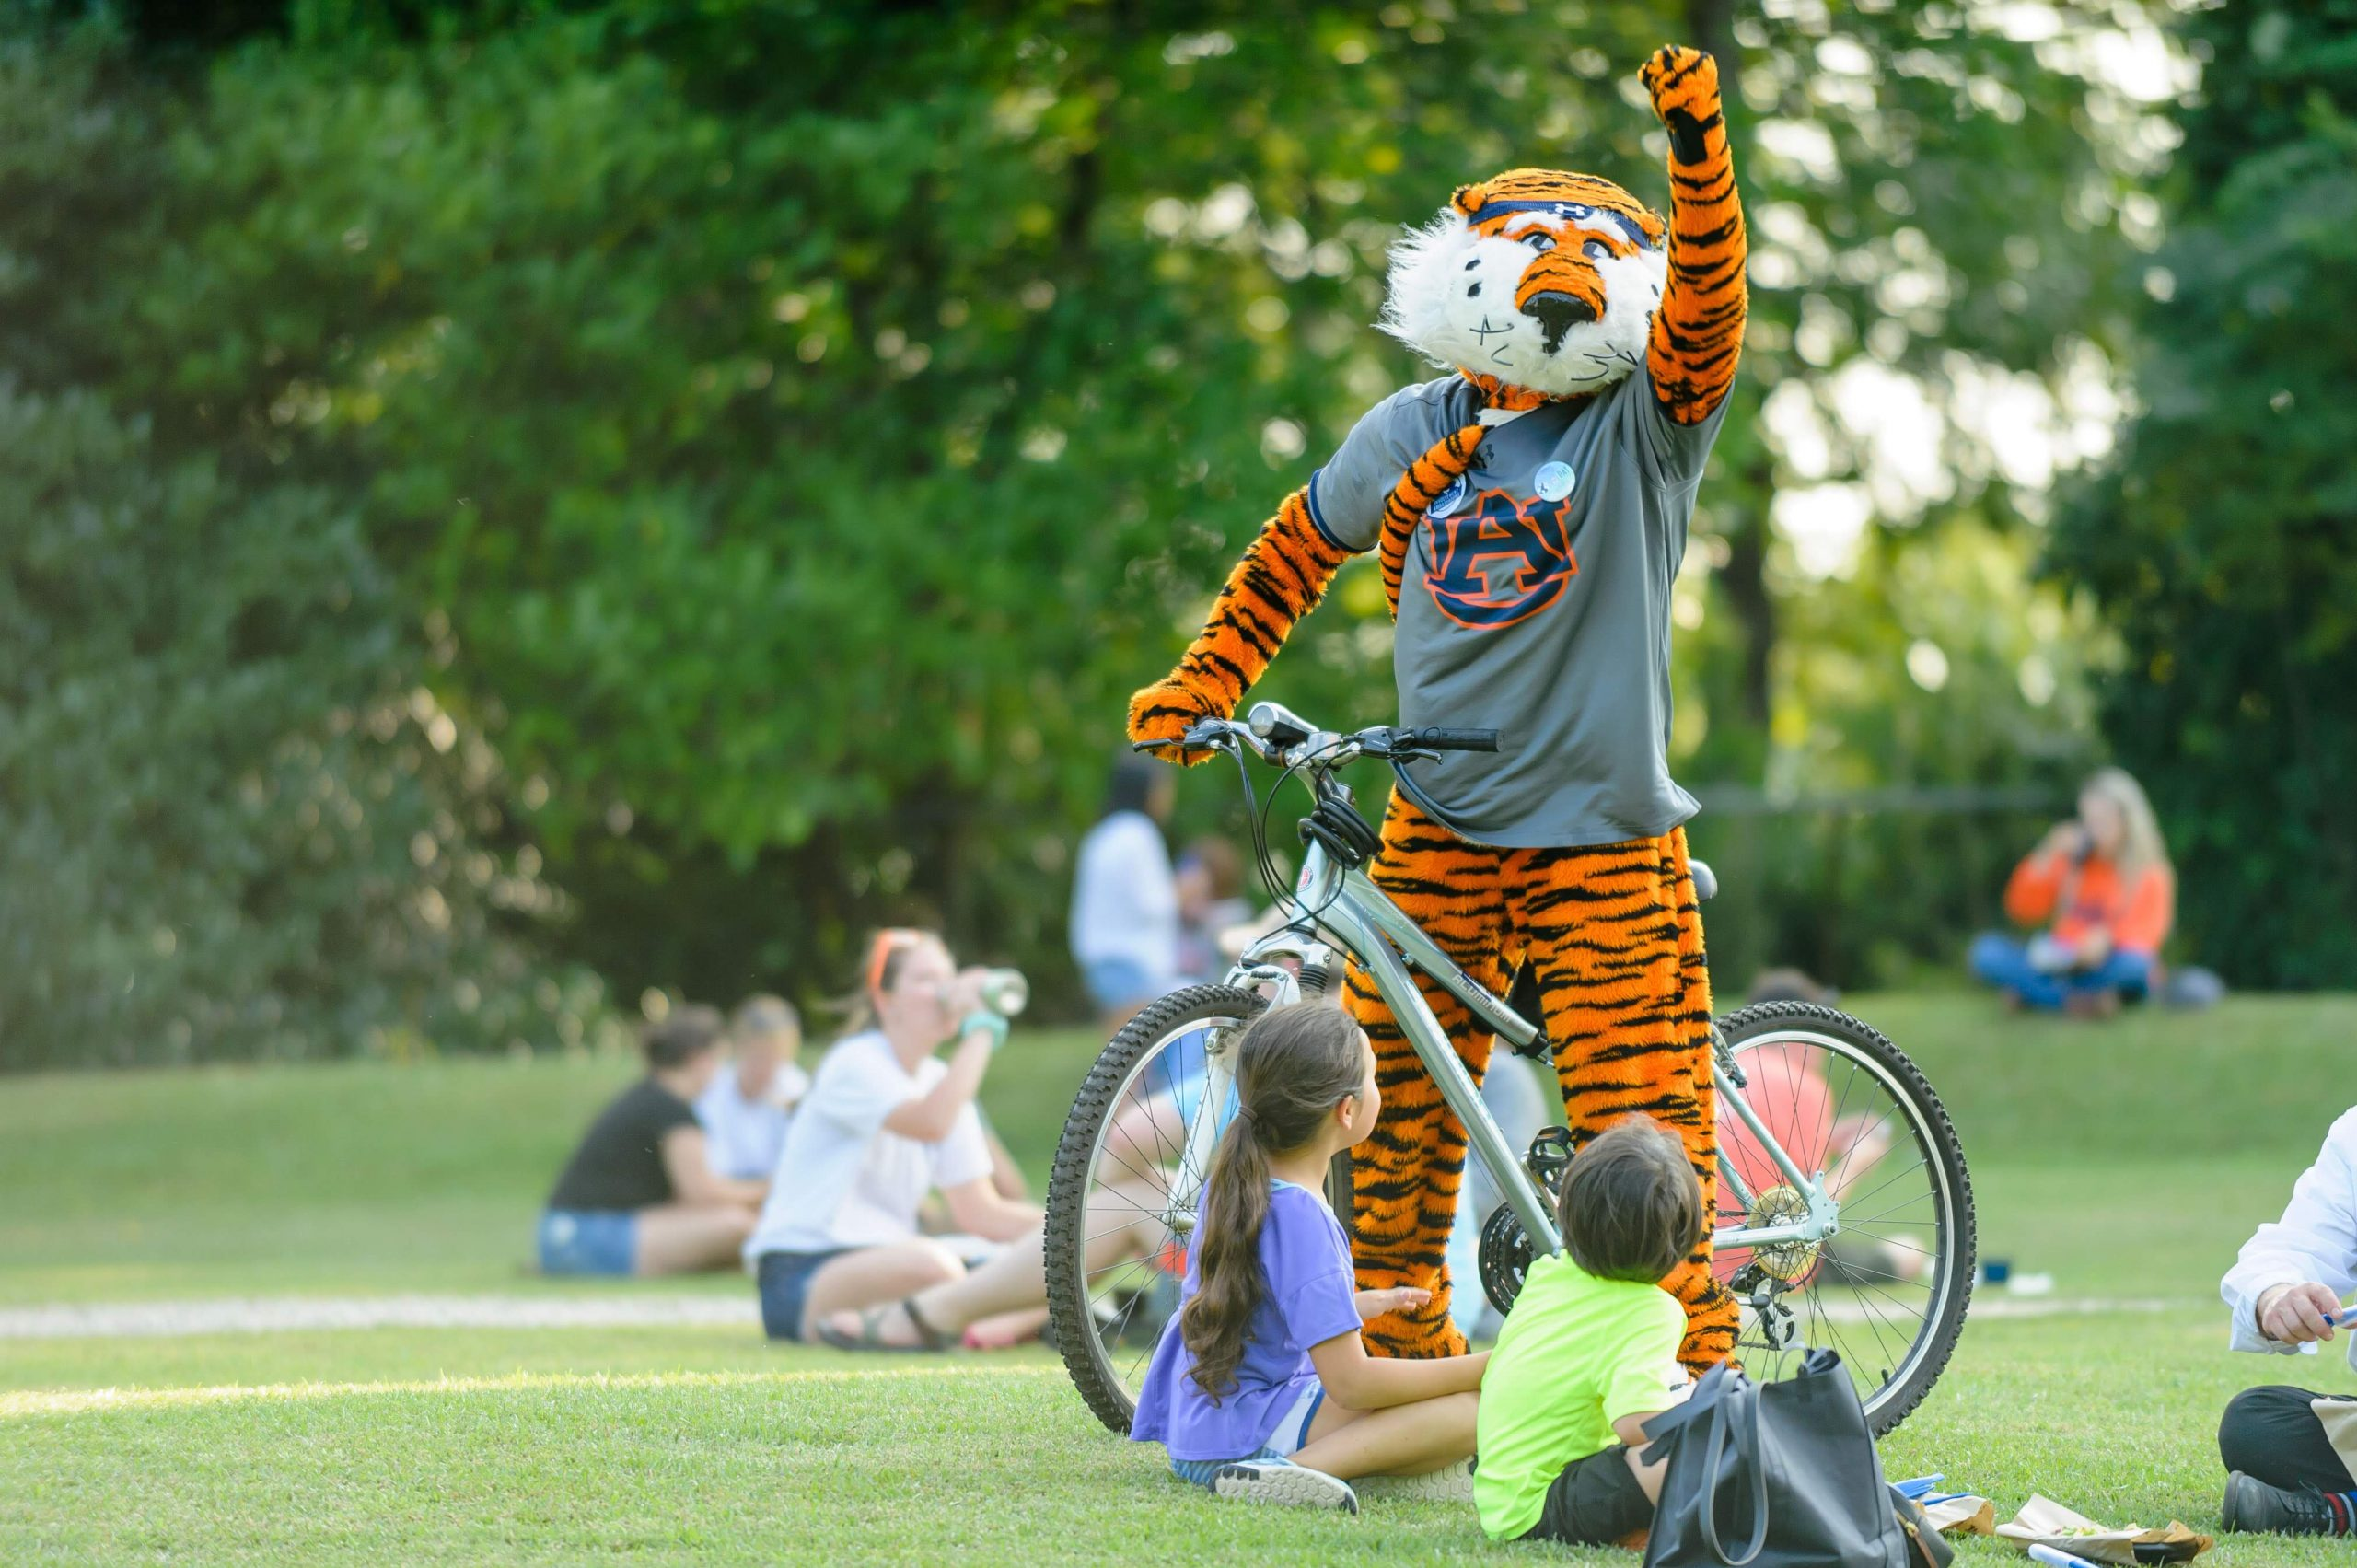 Photo of Aubie on a bicycle with his fist raised.